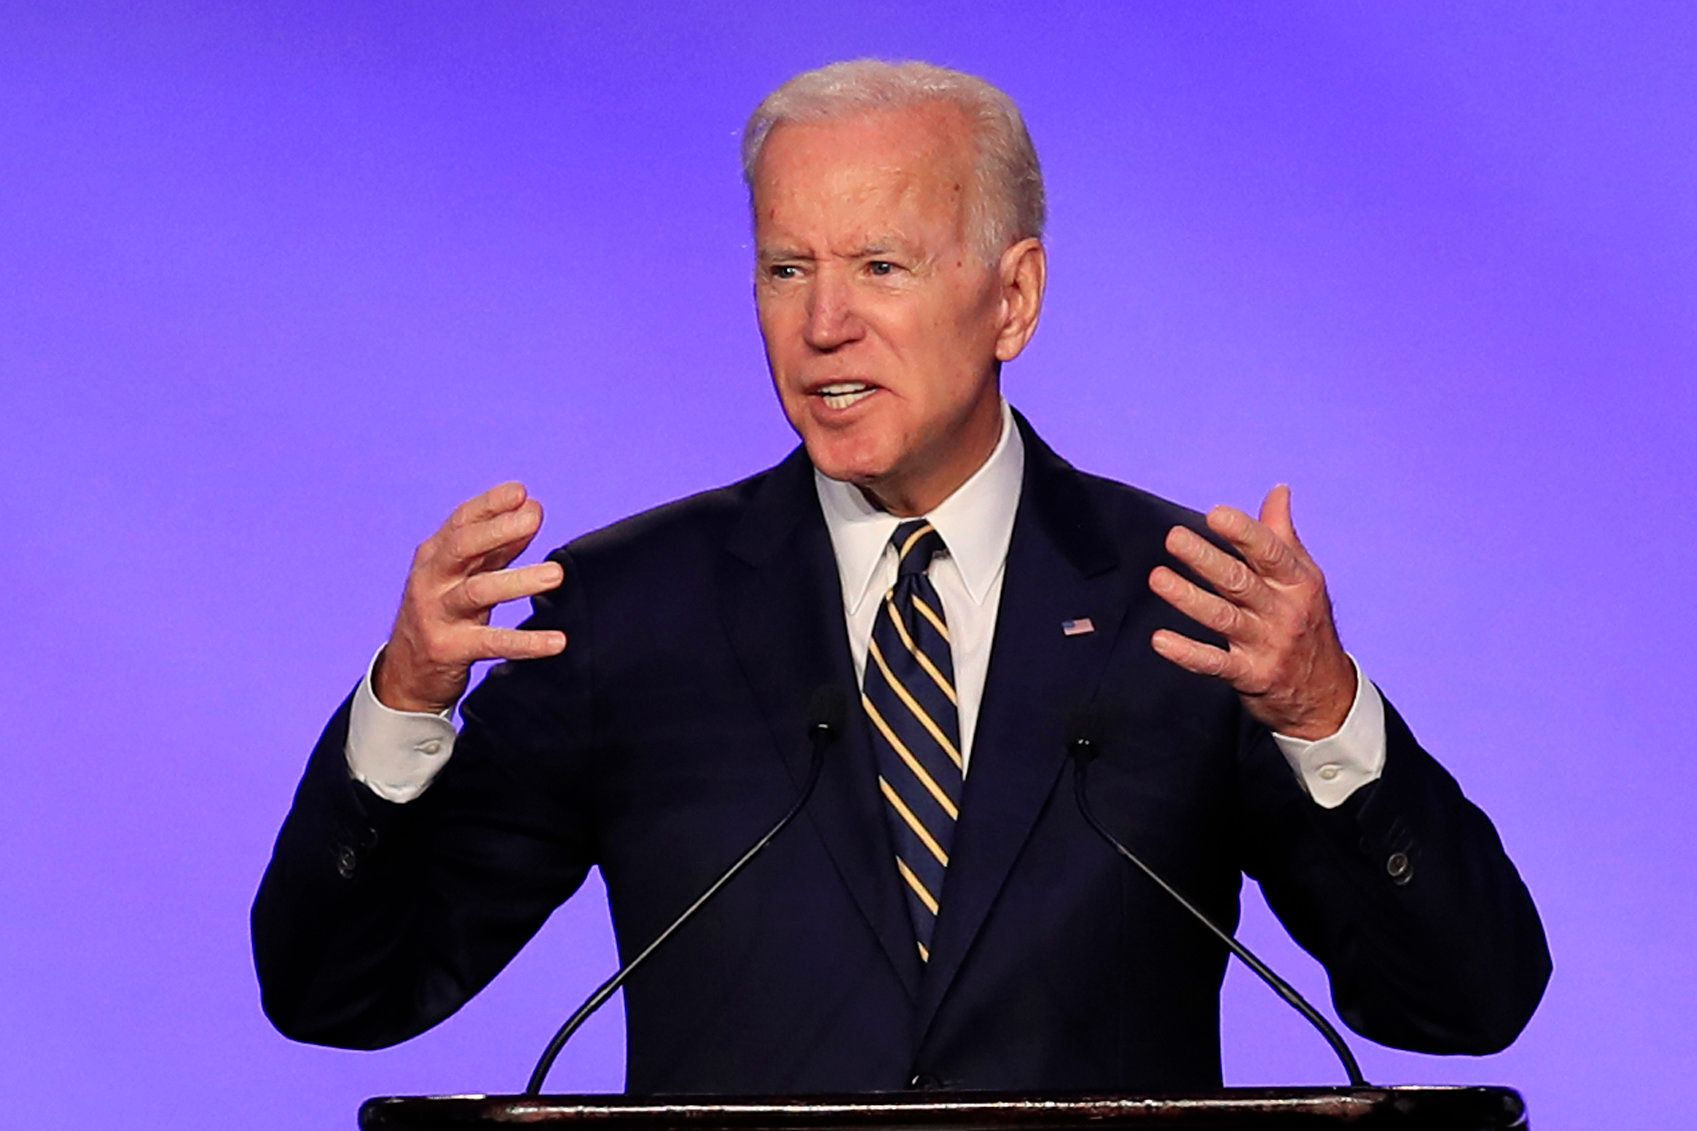 Former Vice President Joe Biden speaks at the IBEW Construction and Maintenance Conference in Washington, Friday, April 5, 2019. (AP Photo/Manuel Balce Ceneta)